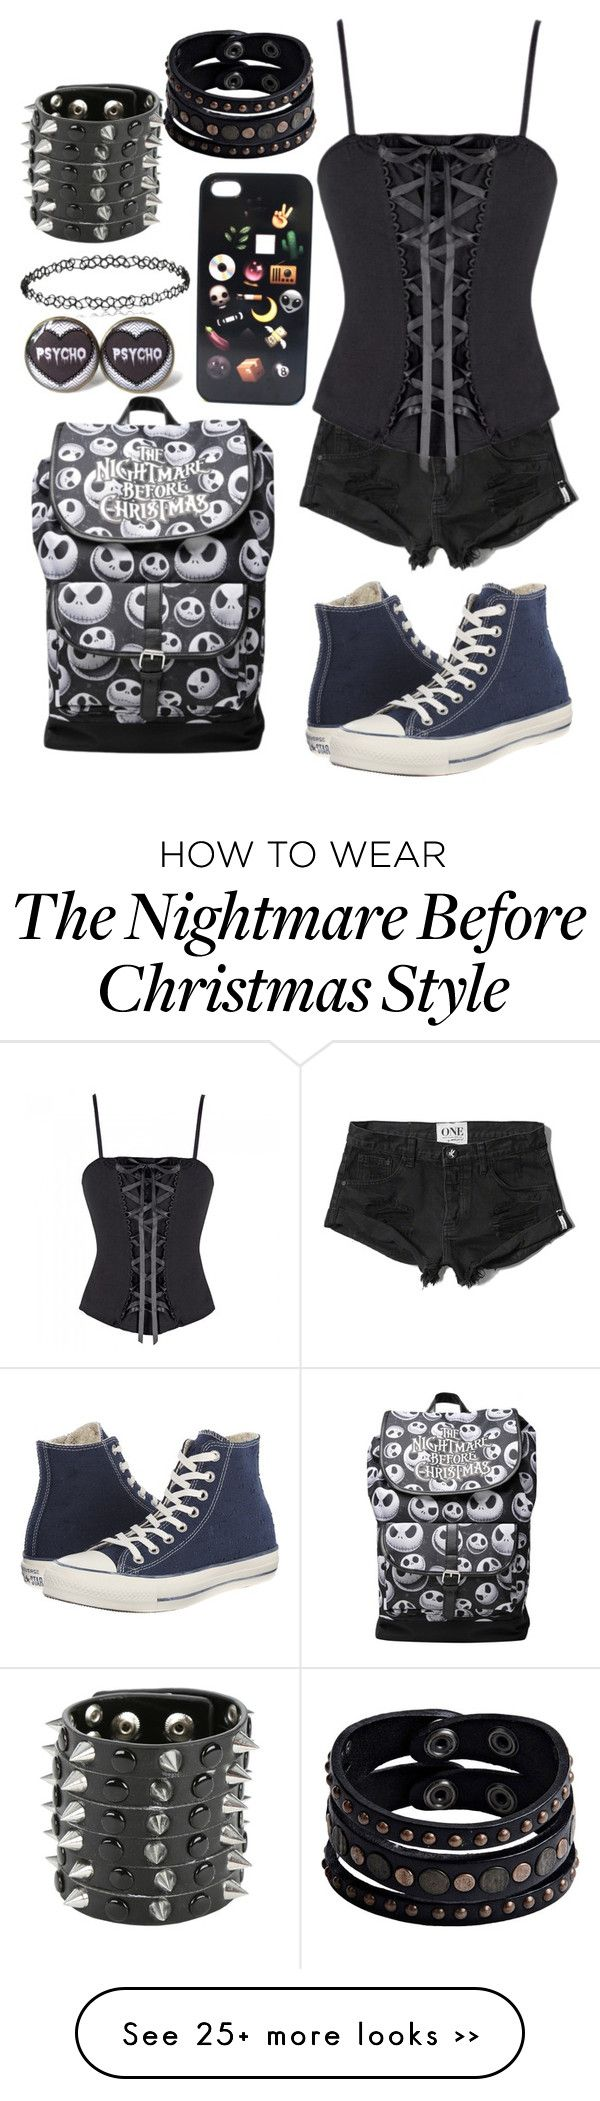 """Untitled #951"" by kellyjellybelly on Polyvore featuring Abercrombie & Fitch, Converse and Replay"